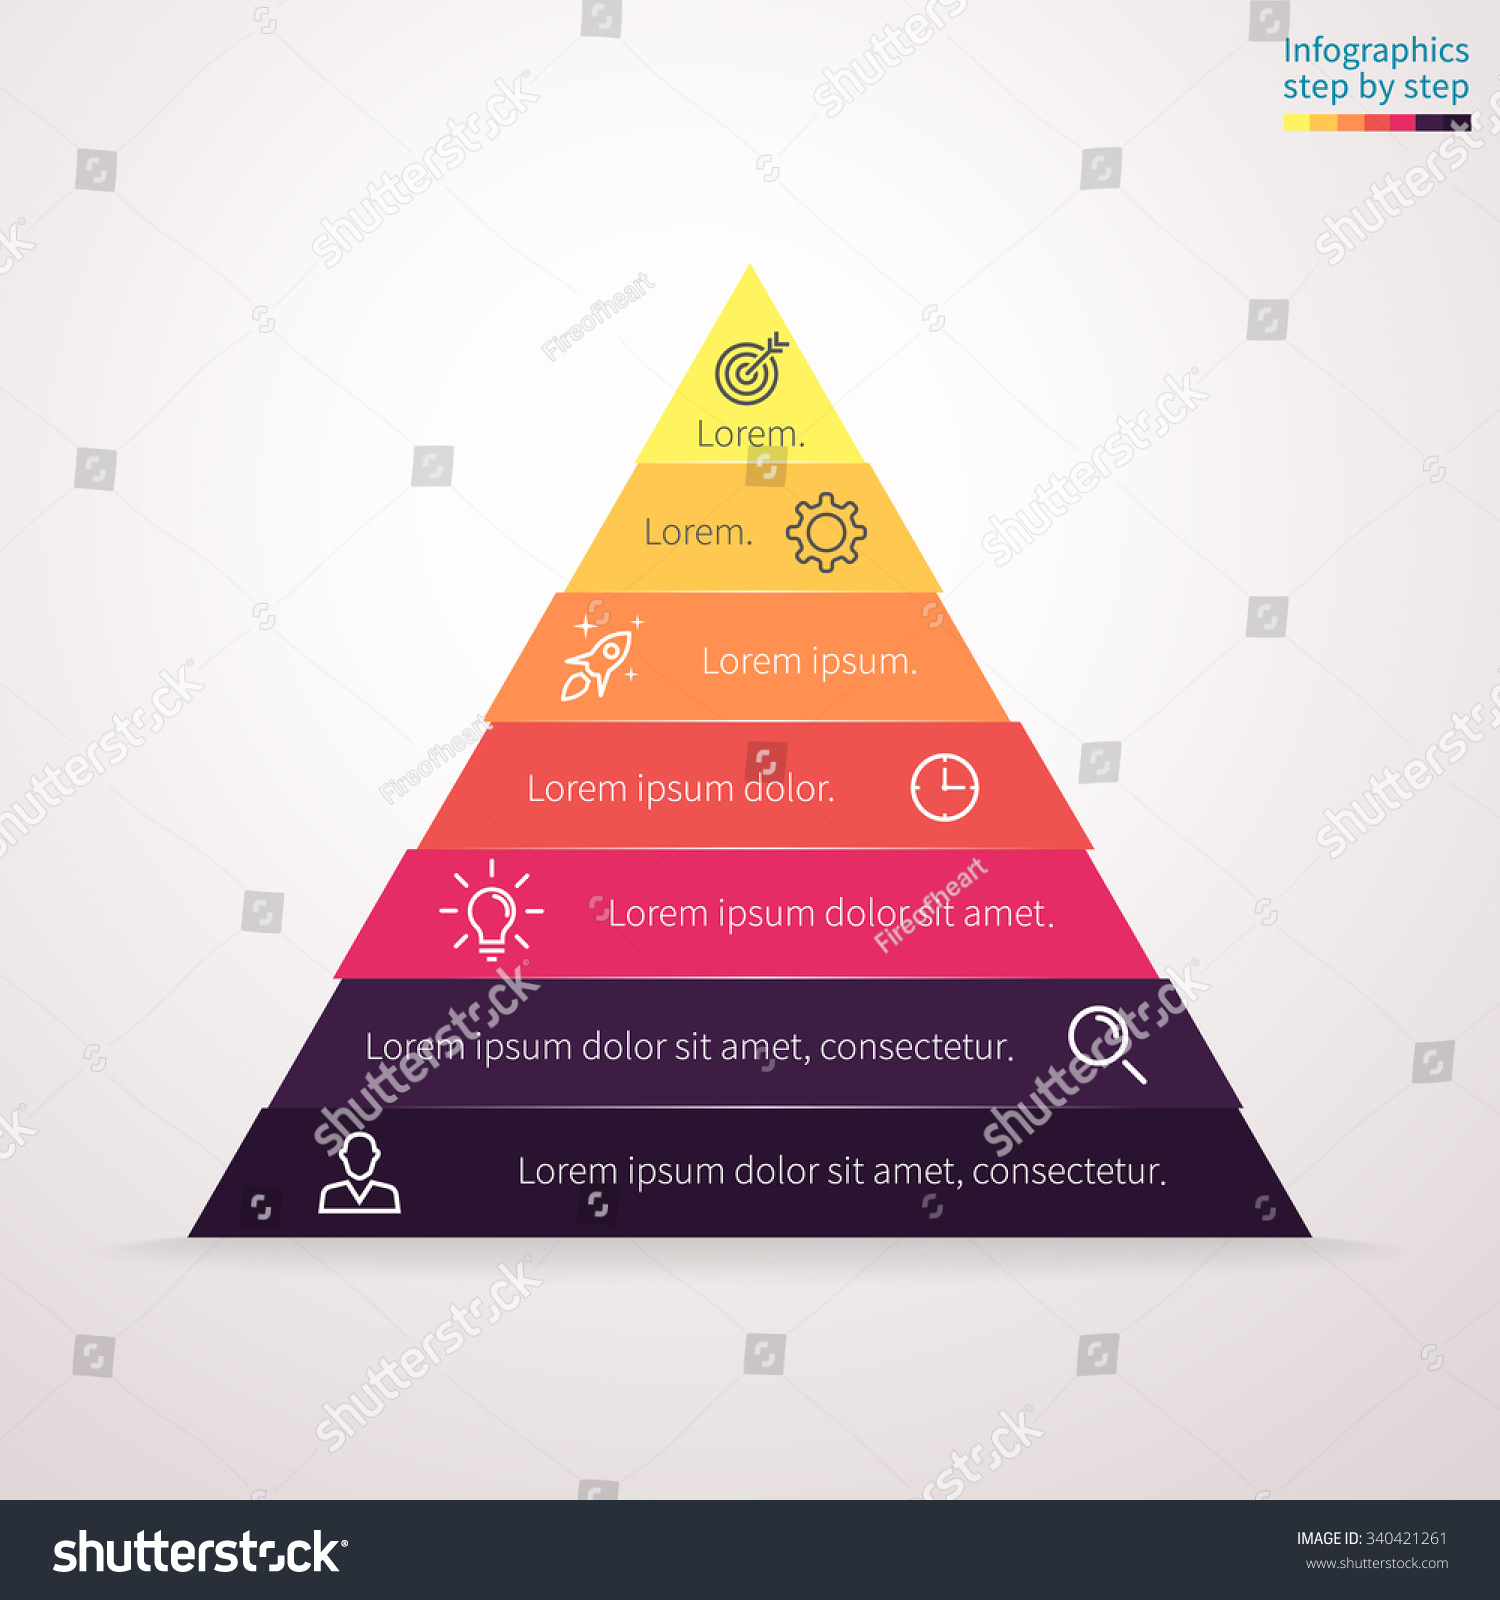 hight resolution of infographics step by step in the form of pyramid triangle with colored sections triangle